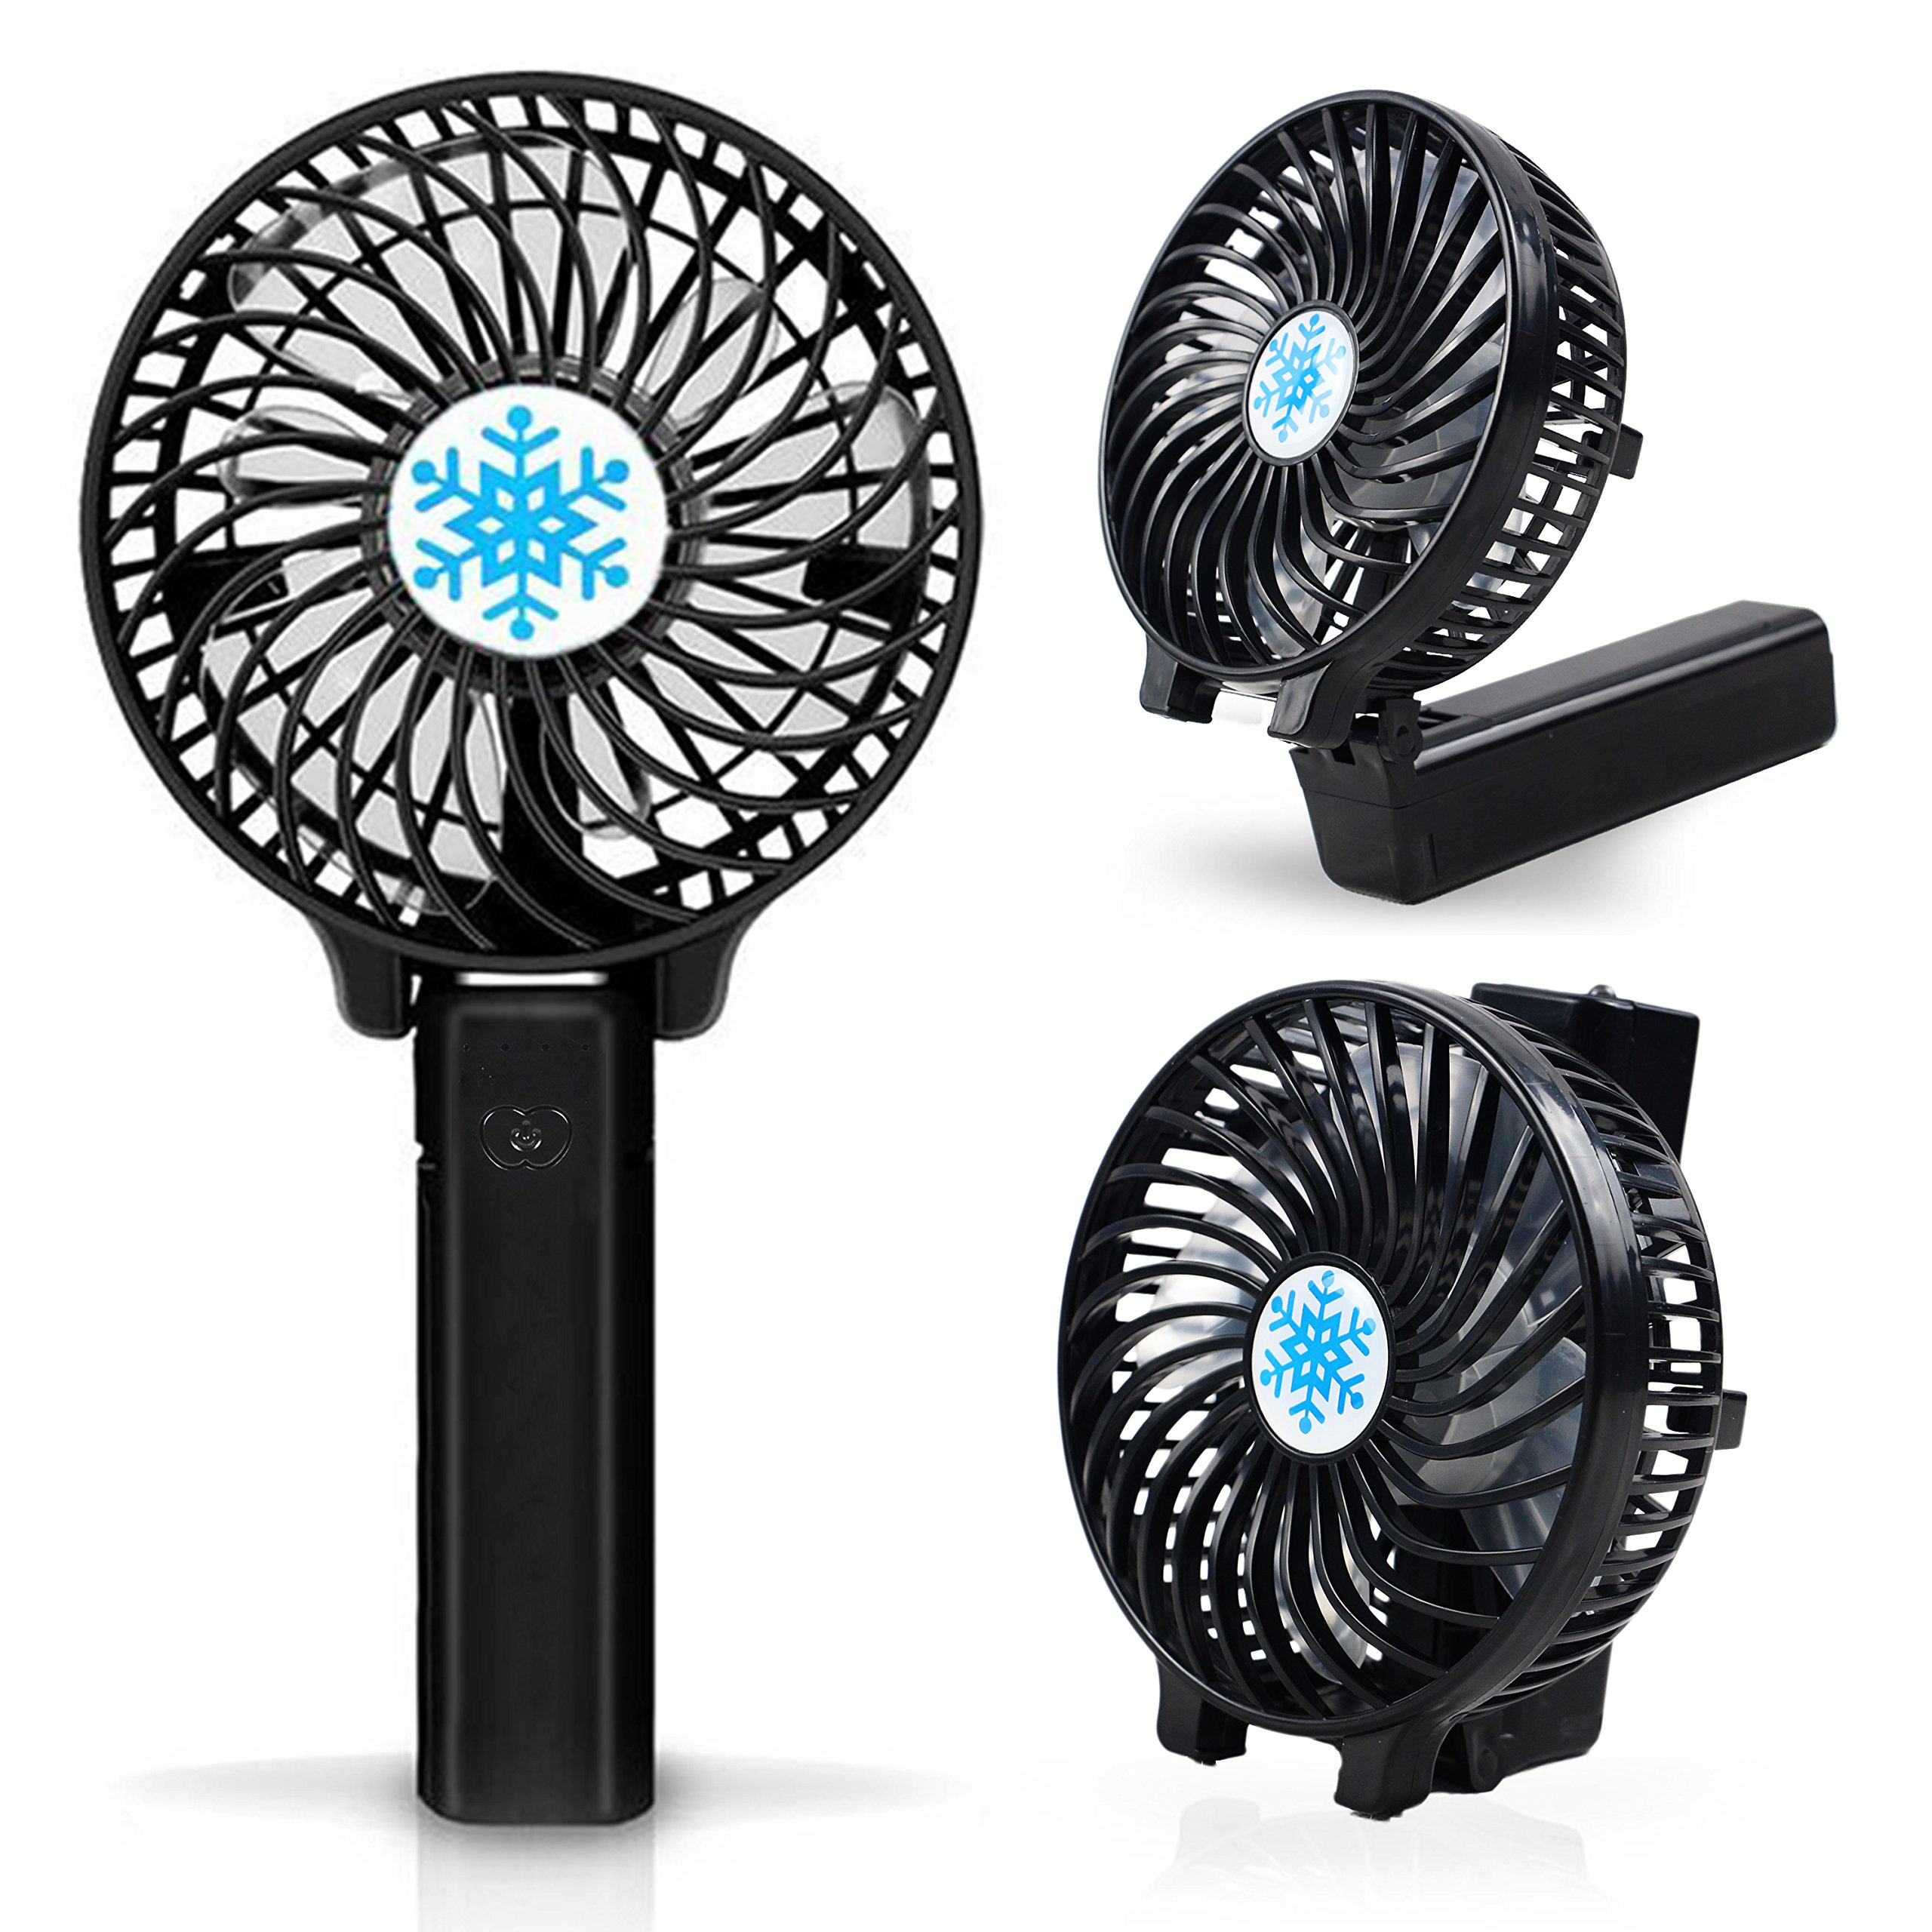 Mini Portable Fan with LED Light,Collapsible Personal Fan USB Rechargeable Battery,18650 Lithium Rechargeable Battery,Lightweight Handheld Cooling Fan,Adapt to Outdoor sports,shopping,travel,office by YONGYUAN (Image #6)